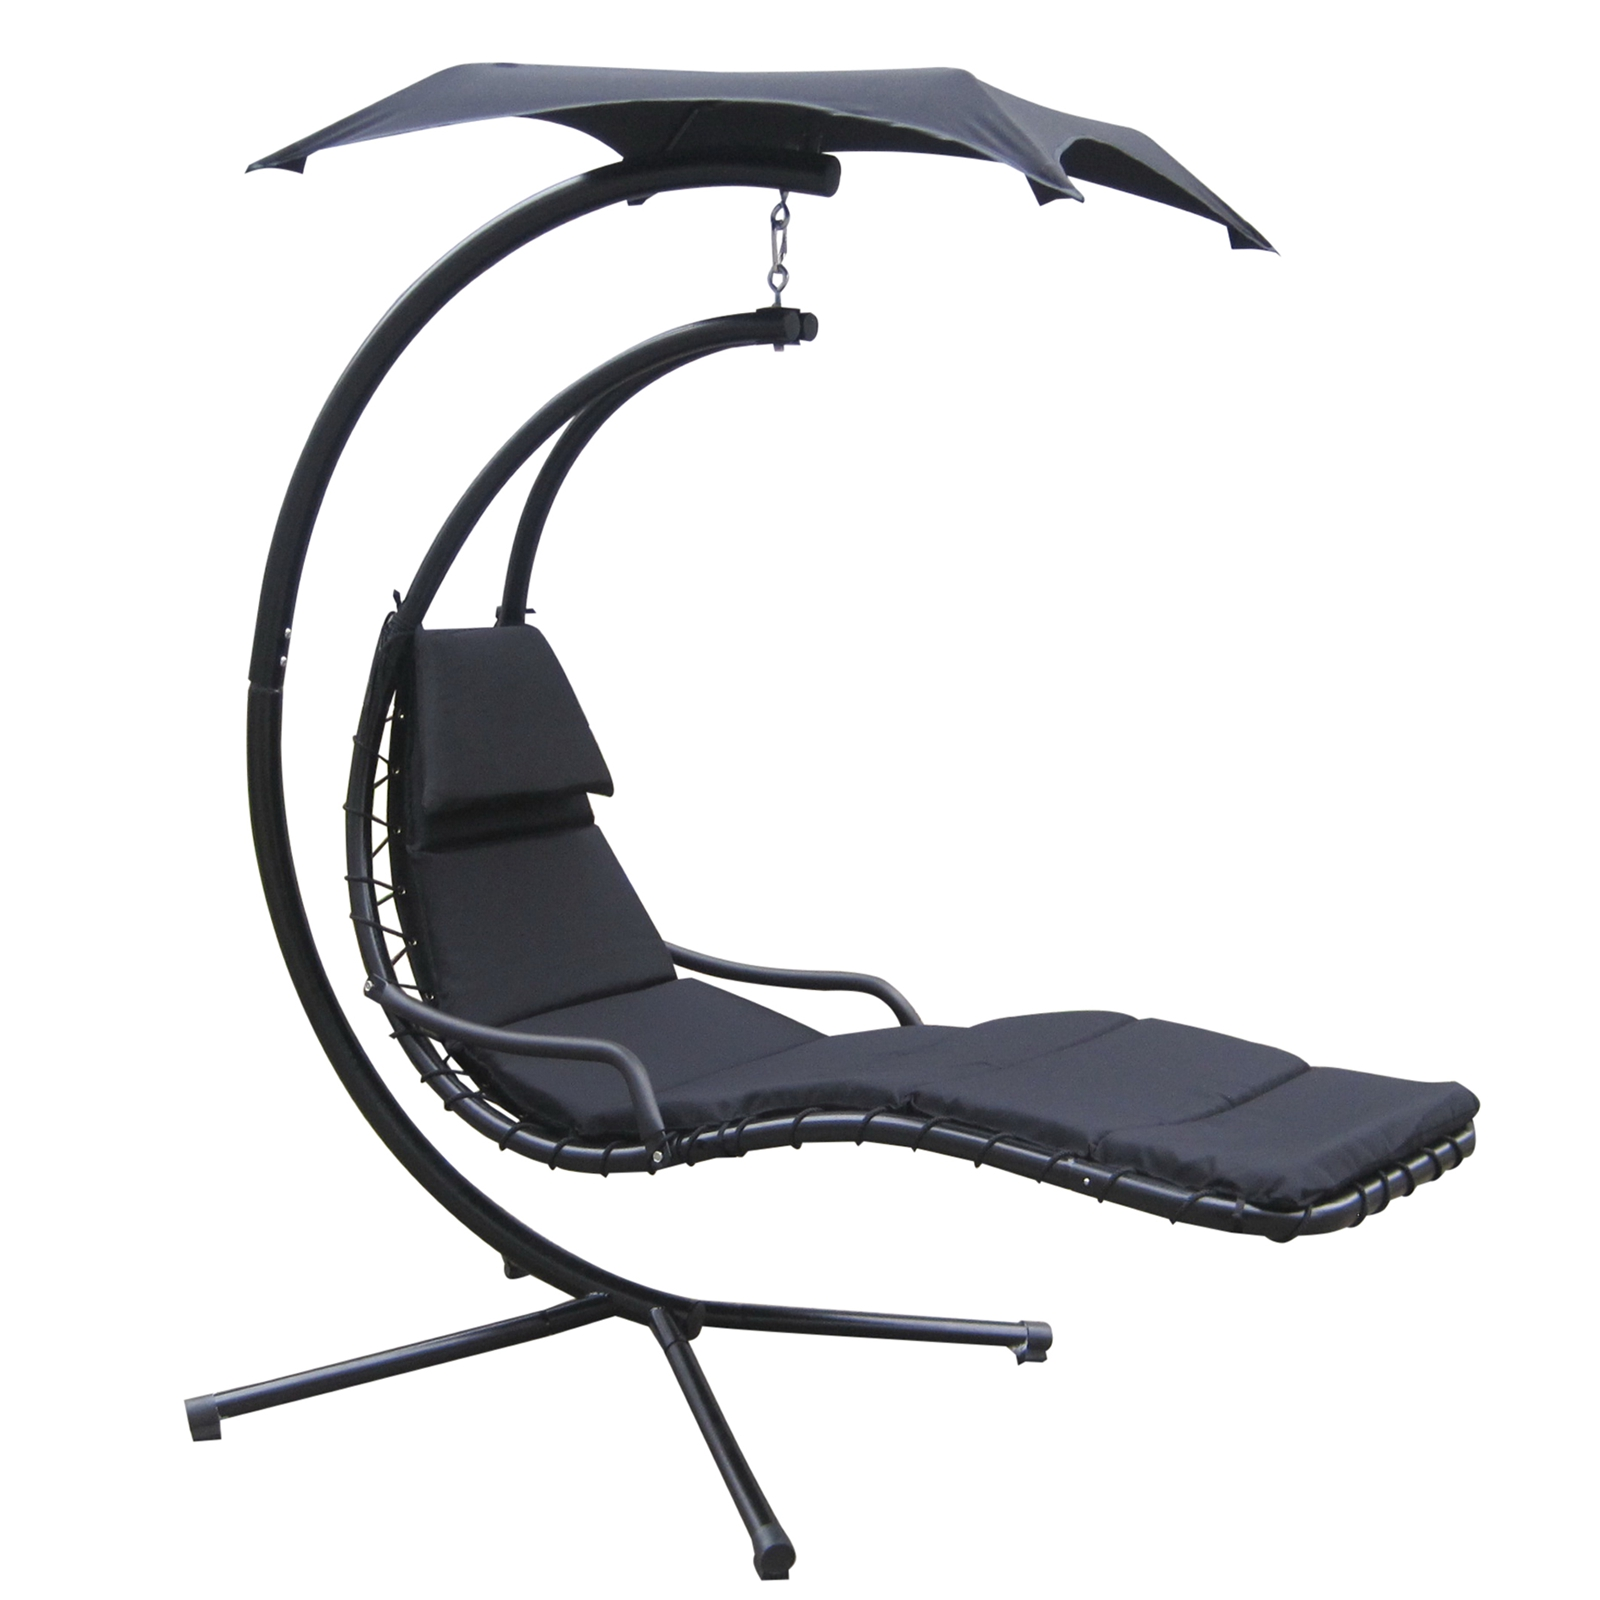 FoxHunter Garden Swing Hammock Helicopter Hanging Chair Seat Sun Lounger Black | eBay